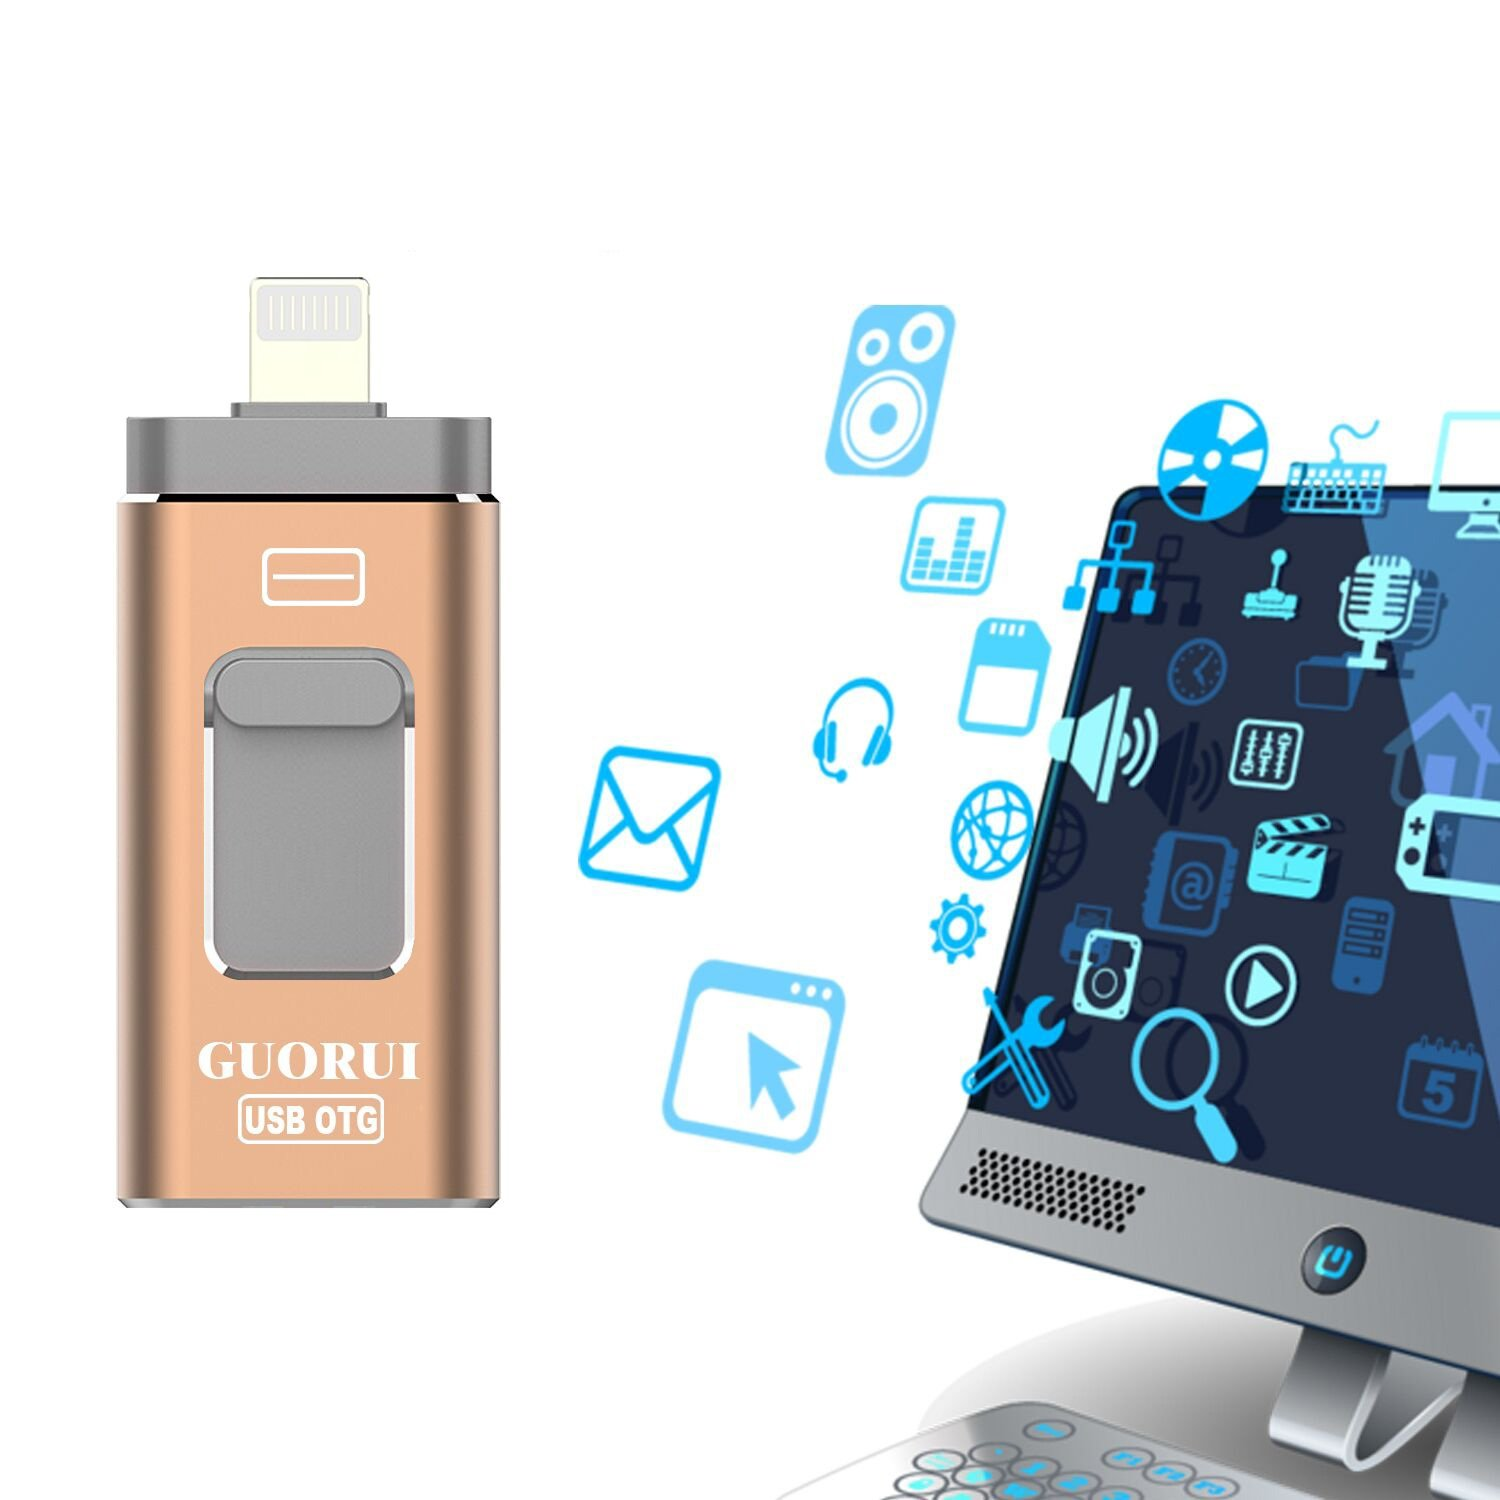 GUORUI USB iflash Drive for iOS, 128 GB Flash Drive for iPhone, Android and Computers, Thumb Drive Memory Storage for Apple, Lighting Memory Stick